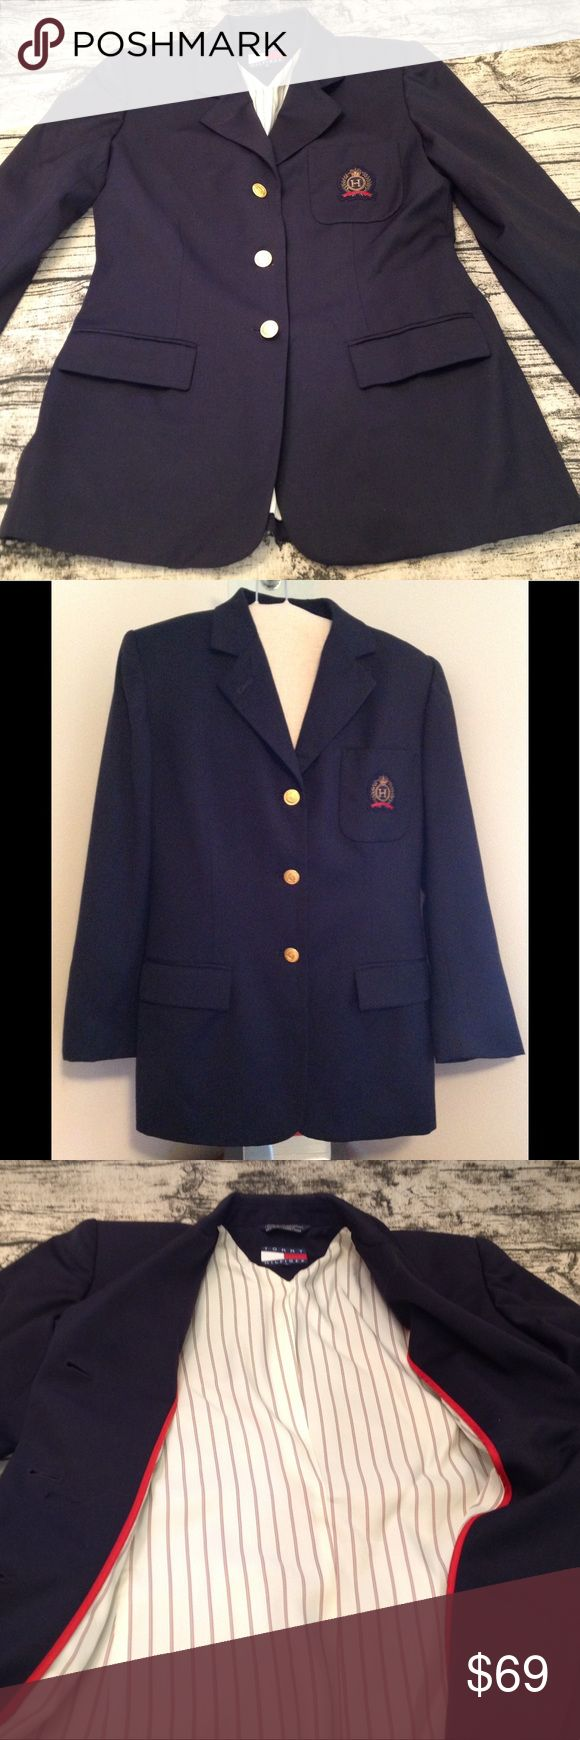 "Tommy Hilfiger Blazer Navy blue lined Blazer with gold buttons and crest logo on pocket. Very classy and would look great with a skirt, dress pants or your favorite jeans. Size 8 and measures 16"" from armpit to armpit, 16"" across shoulder, 28"" L from shoulder to hem and sleeves are 22"" L. Tommy Hilfiger Jackets & Coats Blazers"